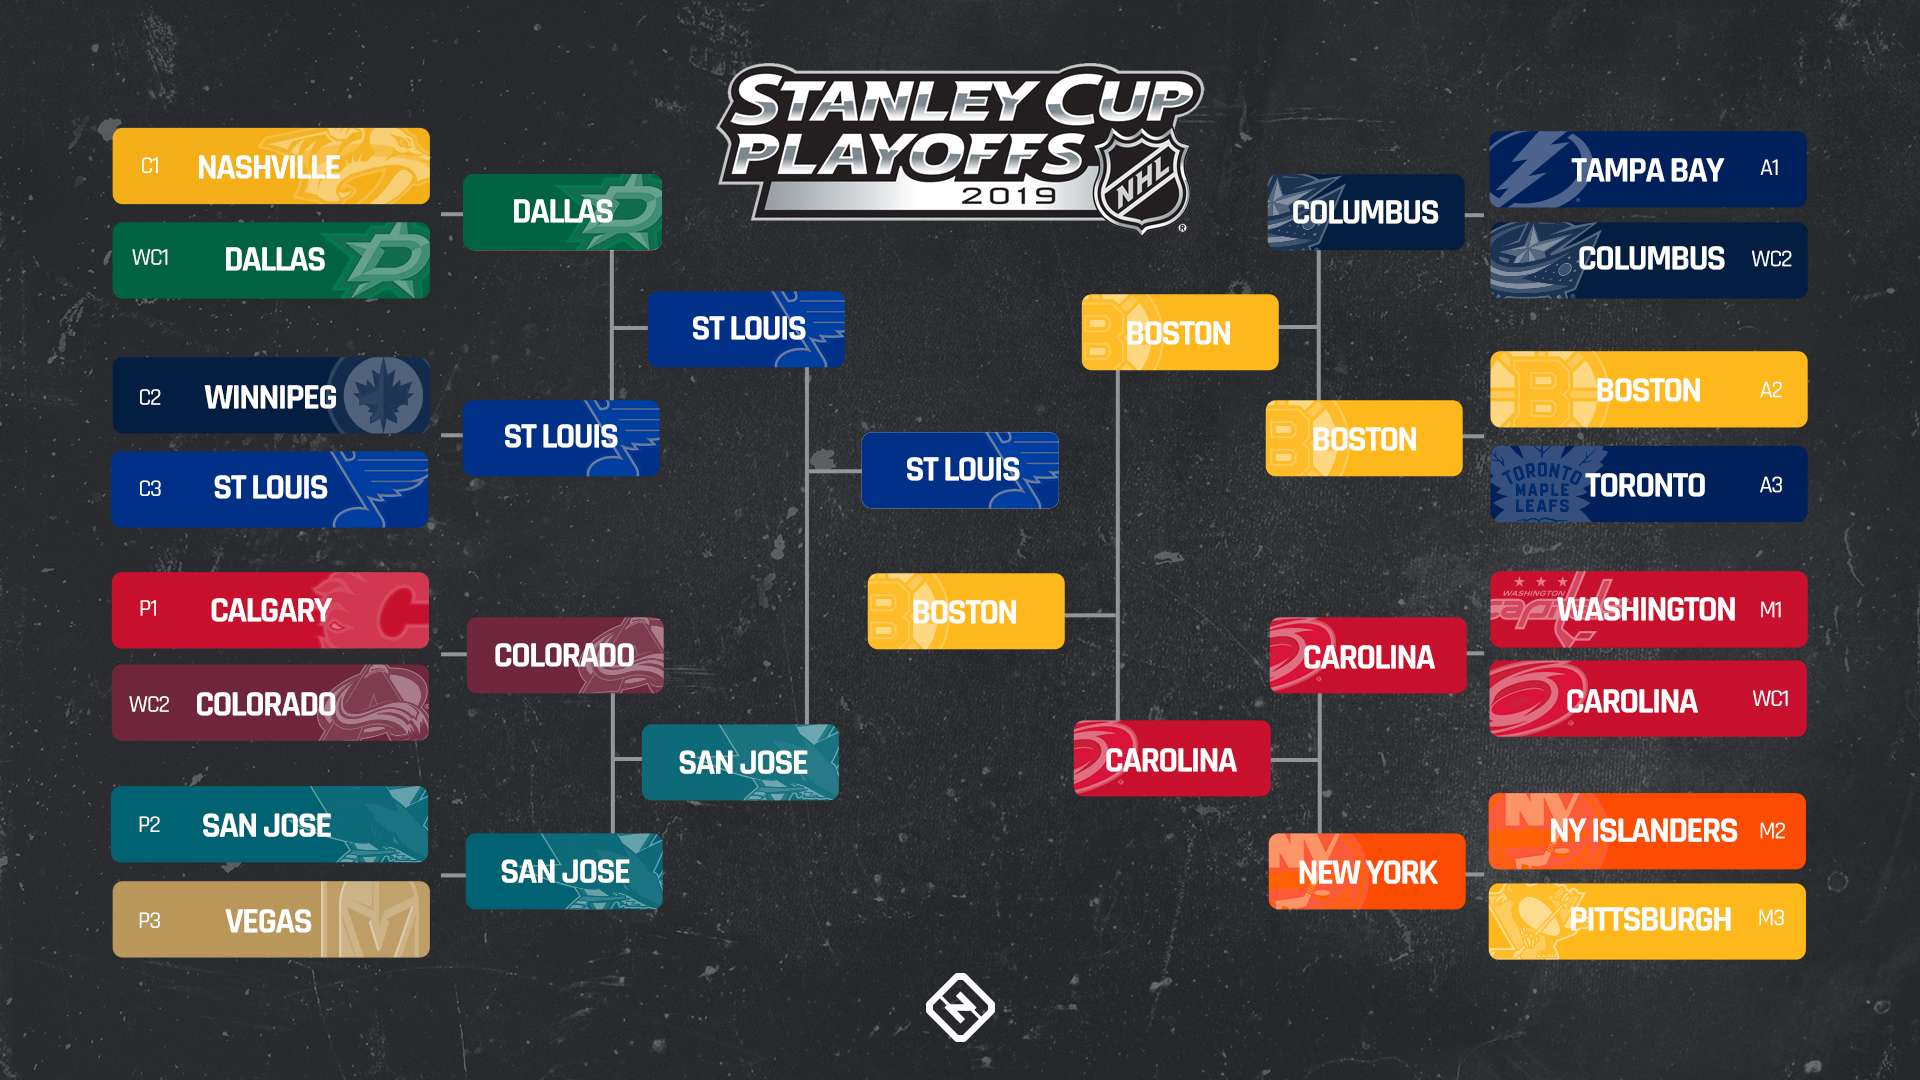 Calendrier Nba Playoff 2019.2019 Stanley Cup Final Schedule Full Bruins Vs Blues Dates